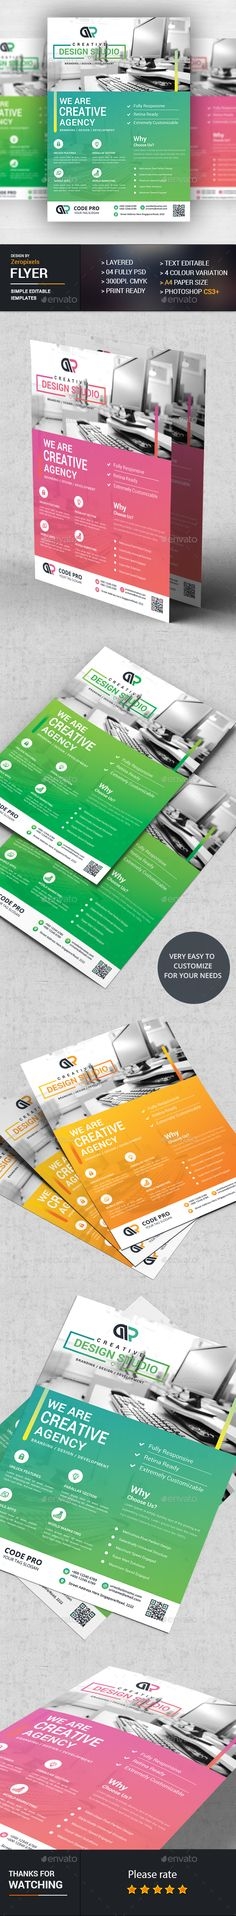 Corporate Web Flyer Design - Flyers Print Template PSD. Download here: http://graphicriver.net/item/corporate-web-flyer/16881175?ref=yinkira